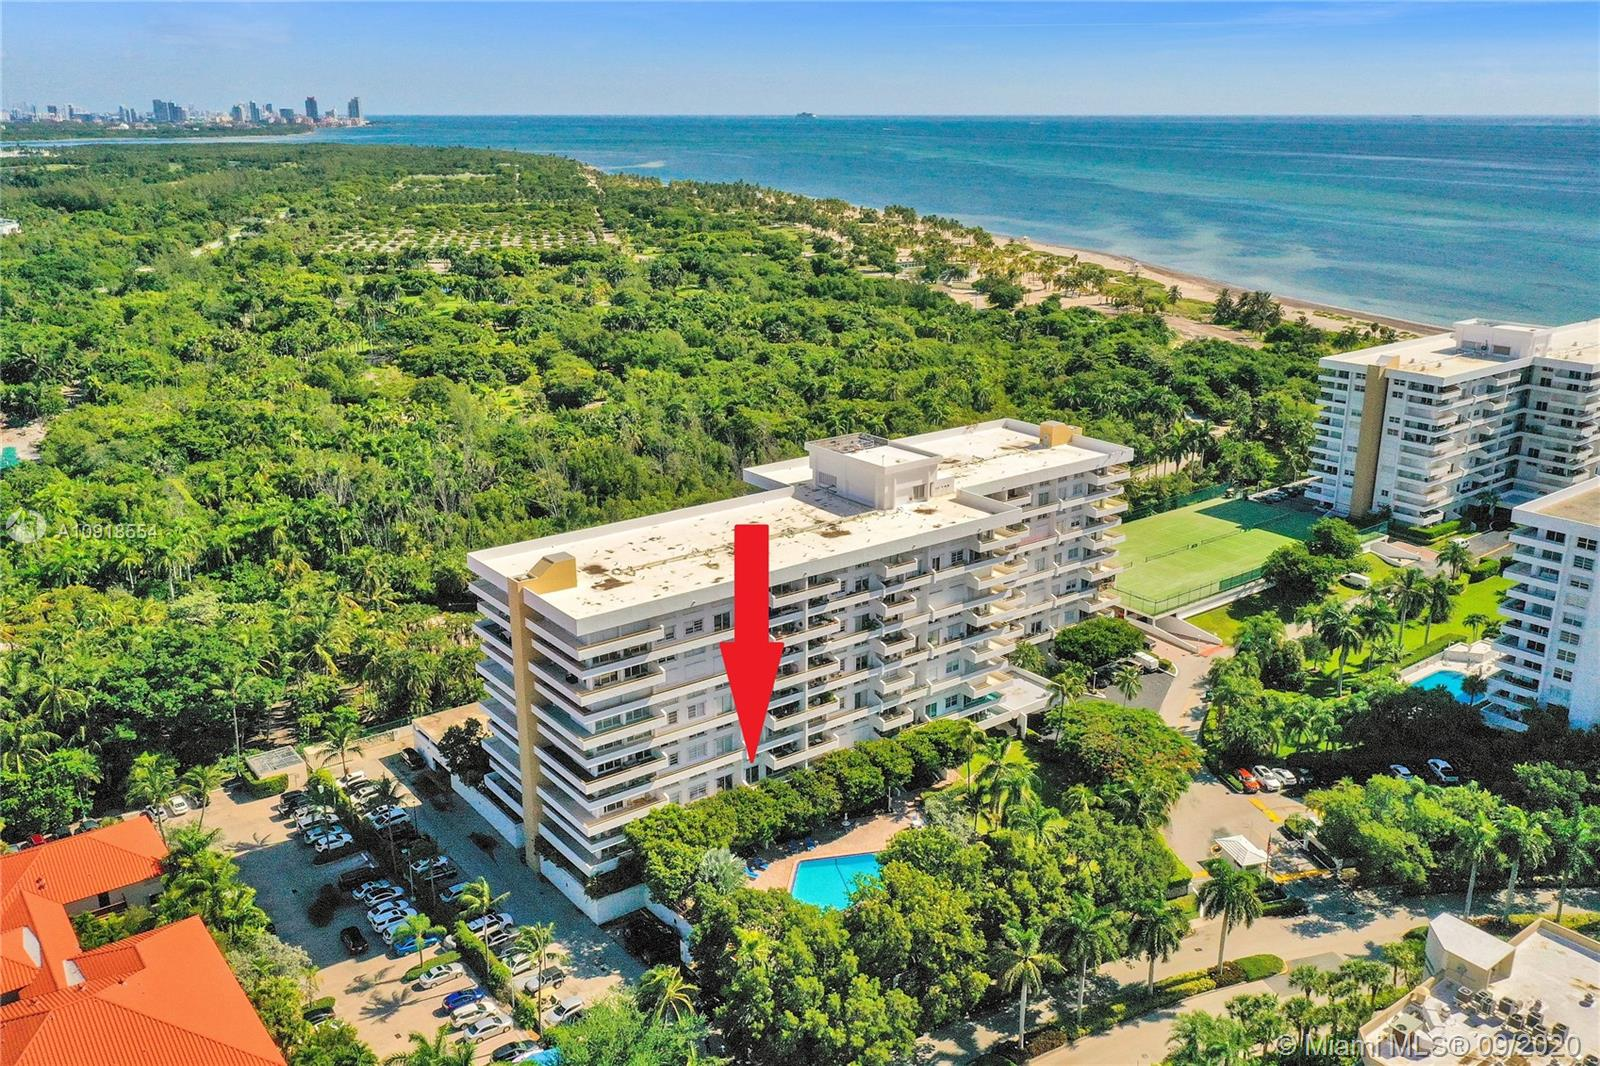 Commodore Club West #303 - 155 Ocean Lane Dr #303, Key Biscayne, FL 33149